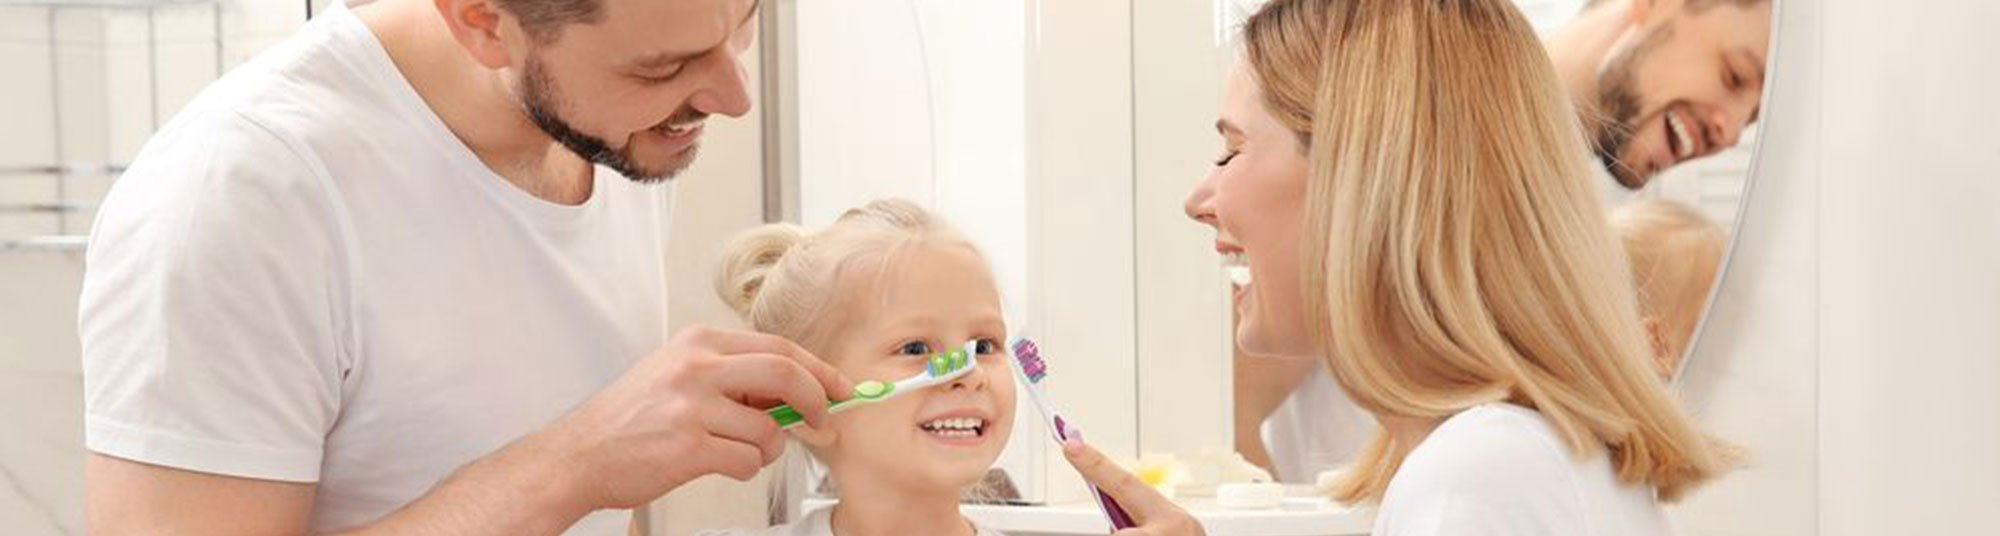 General Dentistry for Children & Family